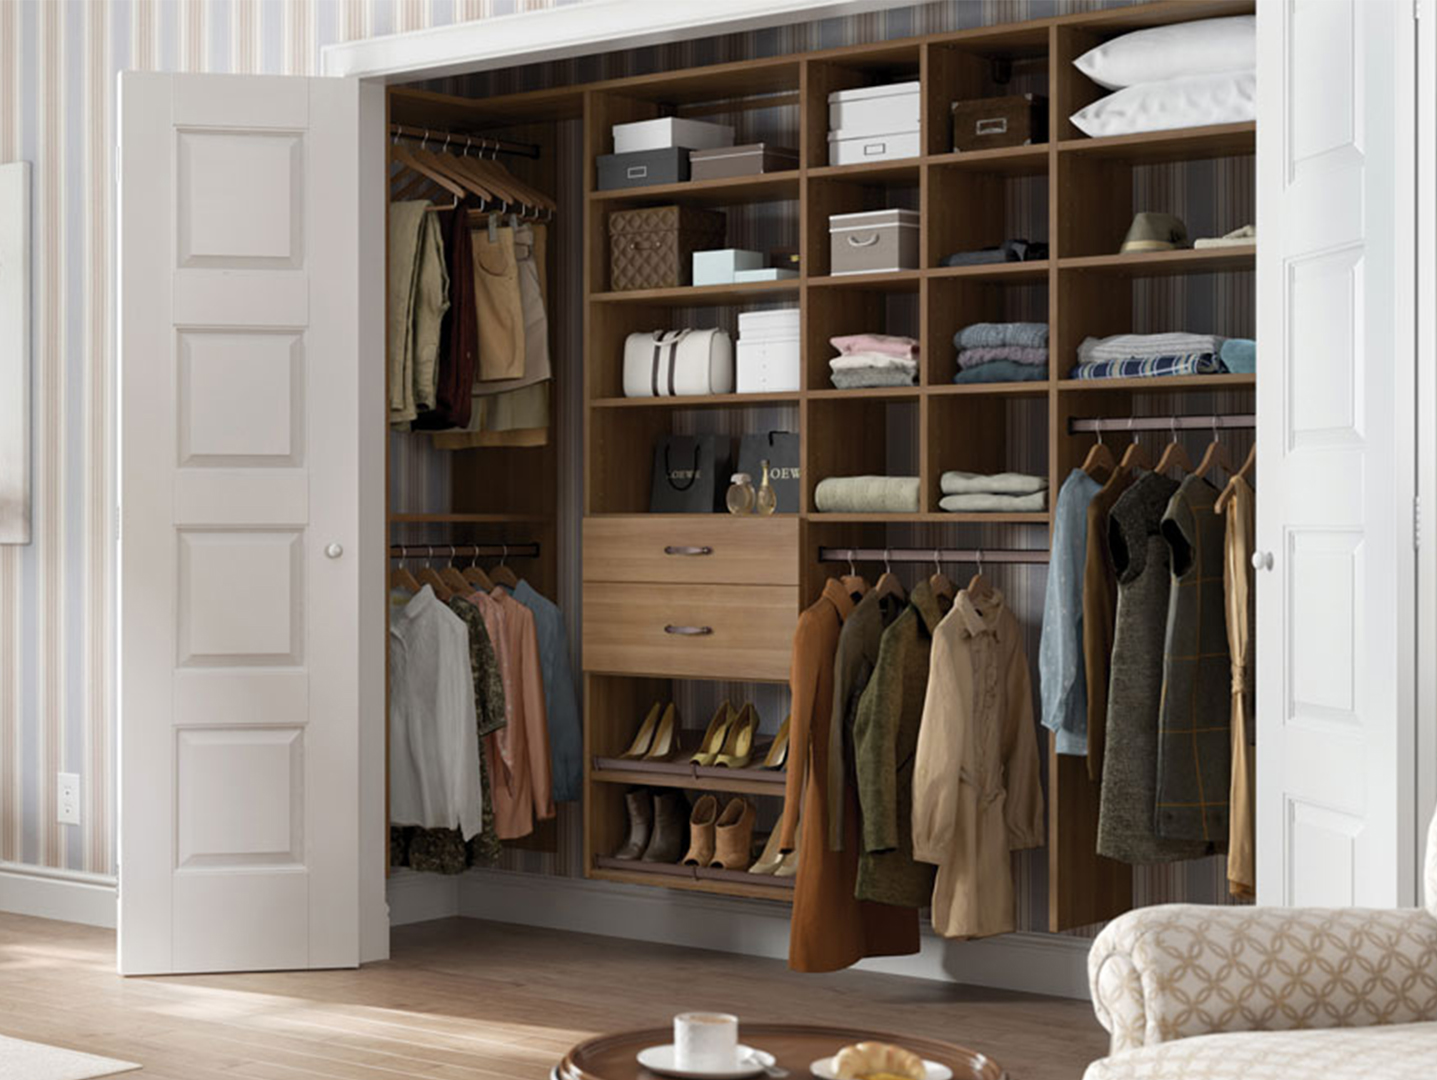 Reach In Closet 									<p>A reach-in closet requires a combination of high function and bedroom design aesthetic. Drawers, shelves, inserts, differing heights of hanging rods, and other options give clothing, shoes, and accessories a home that is organized and easily accessible.</p>